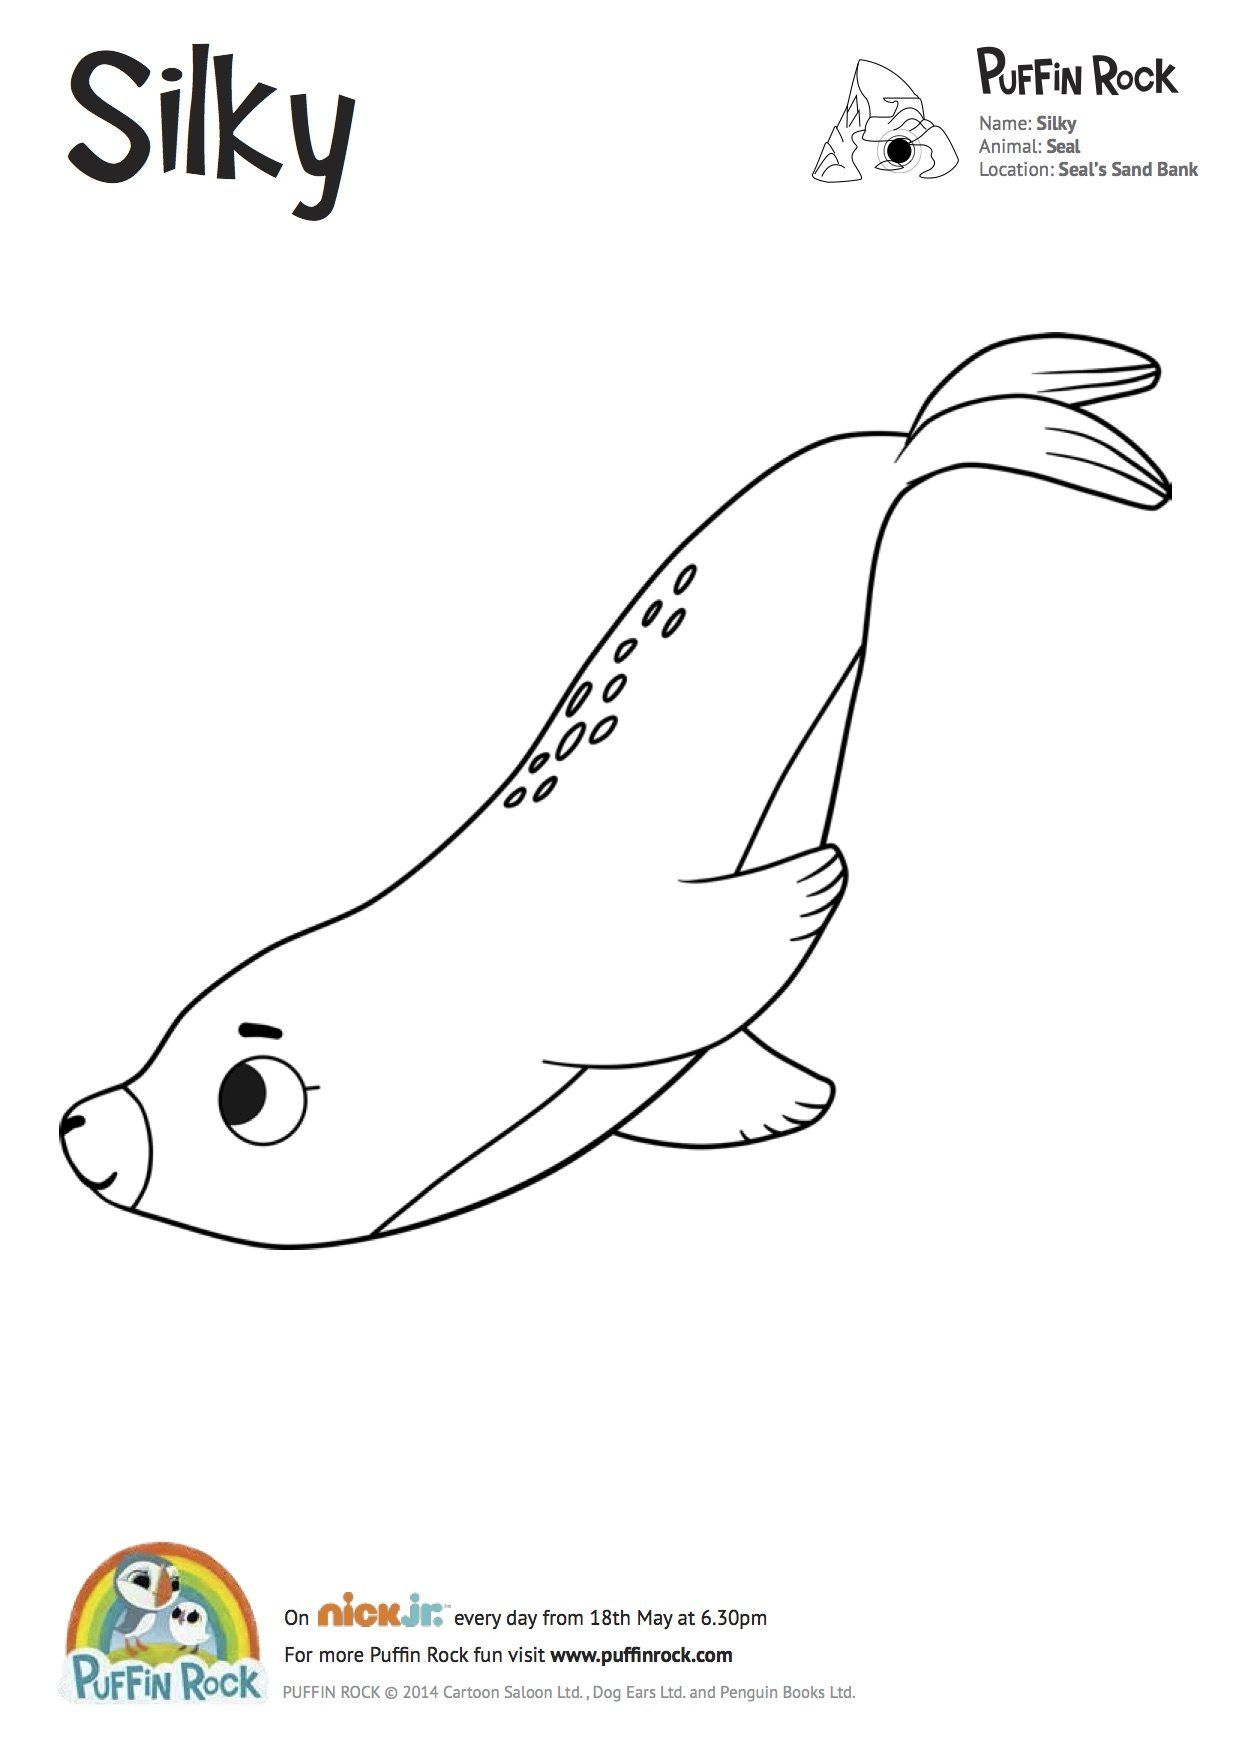 Free Puffin Rock Colouring Sheets Toddler Art Projects Coloring Pages Coloring Pages For Kids